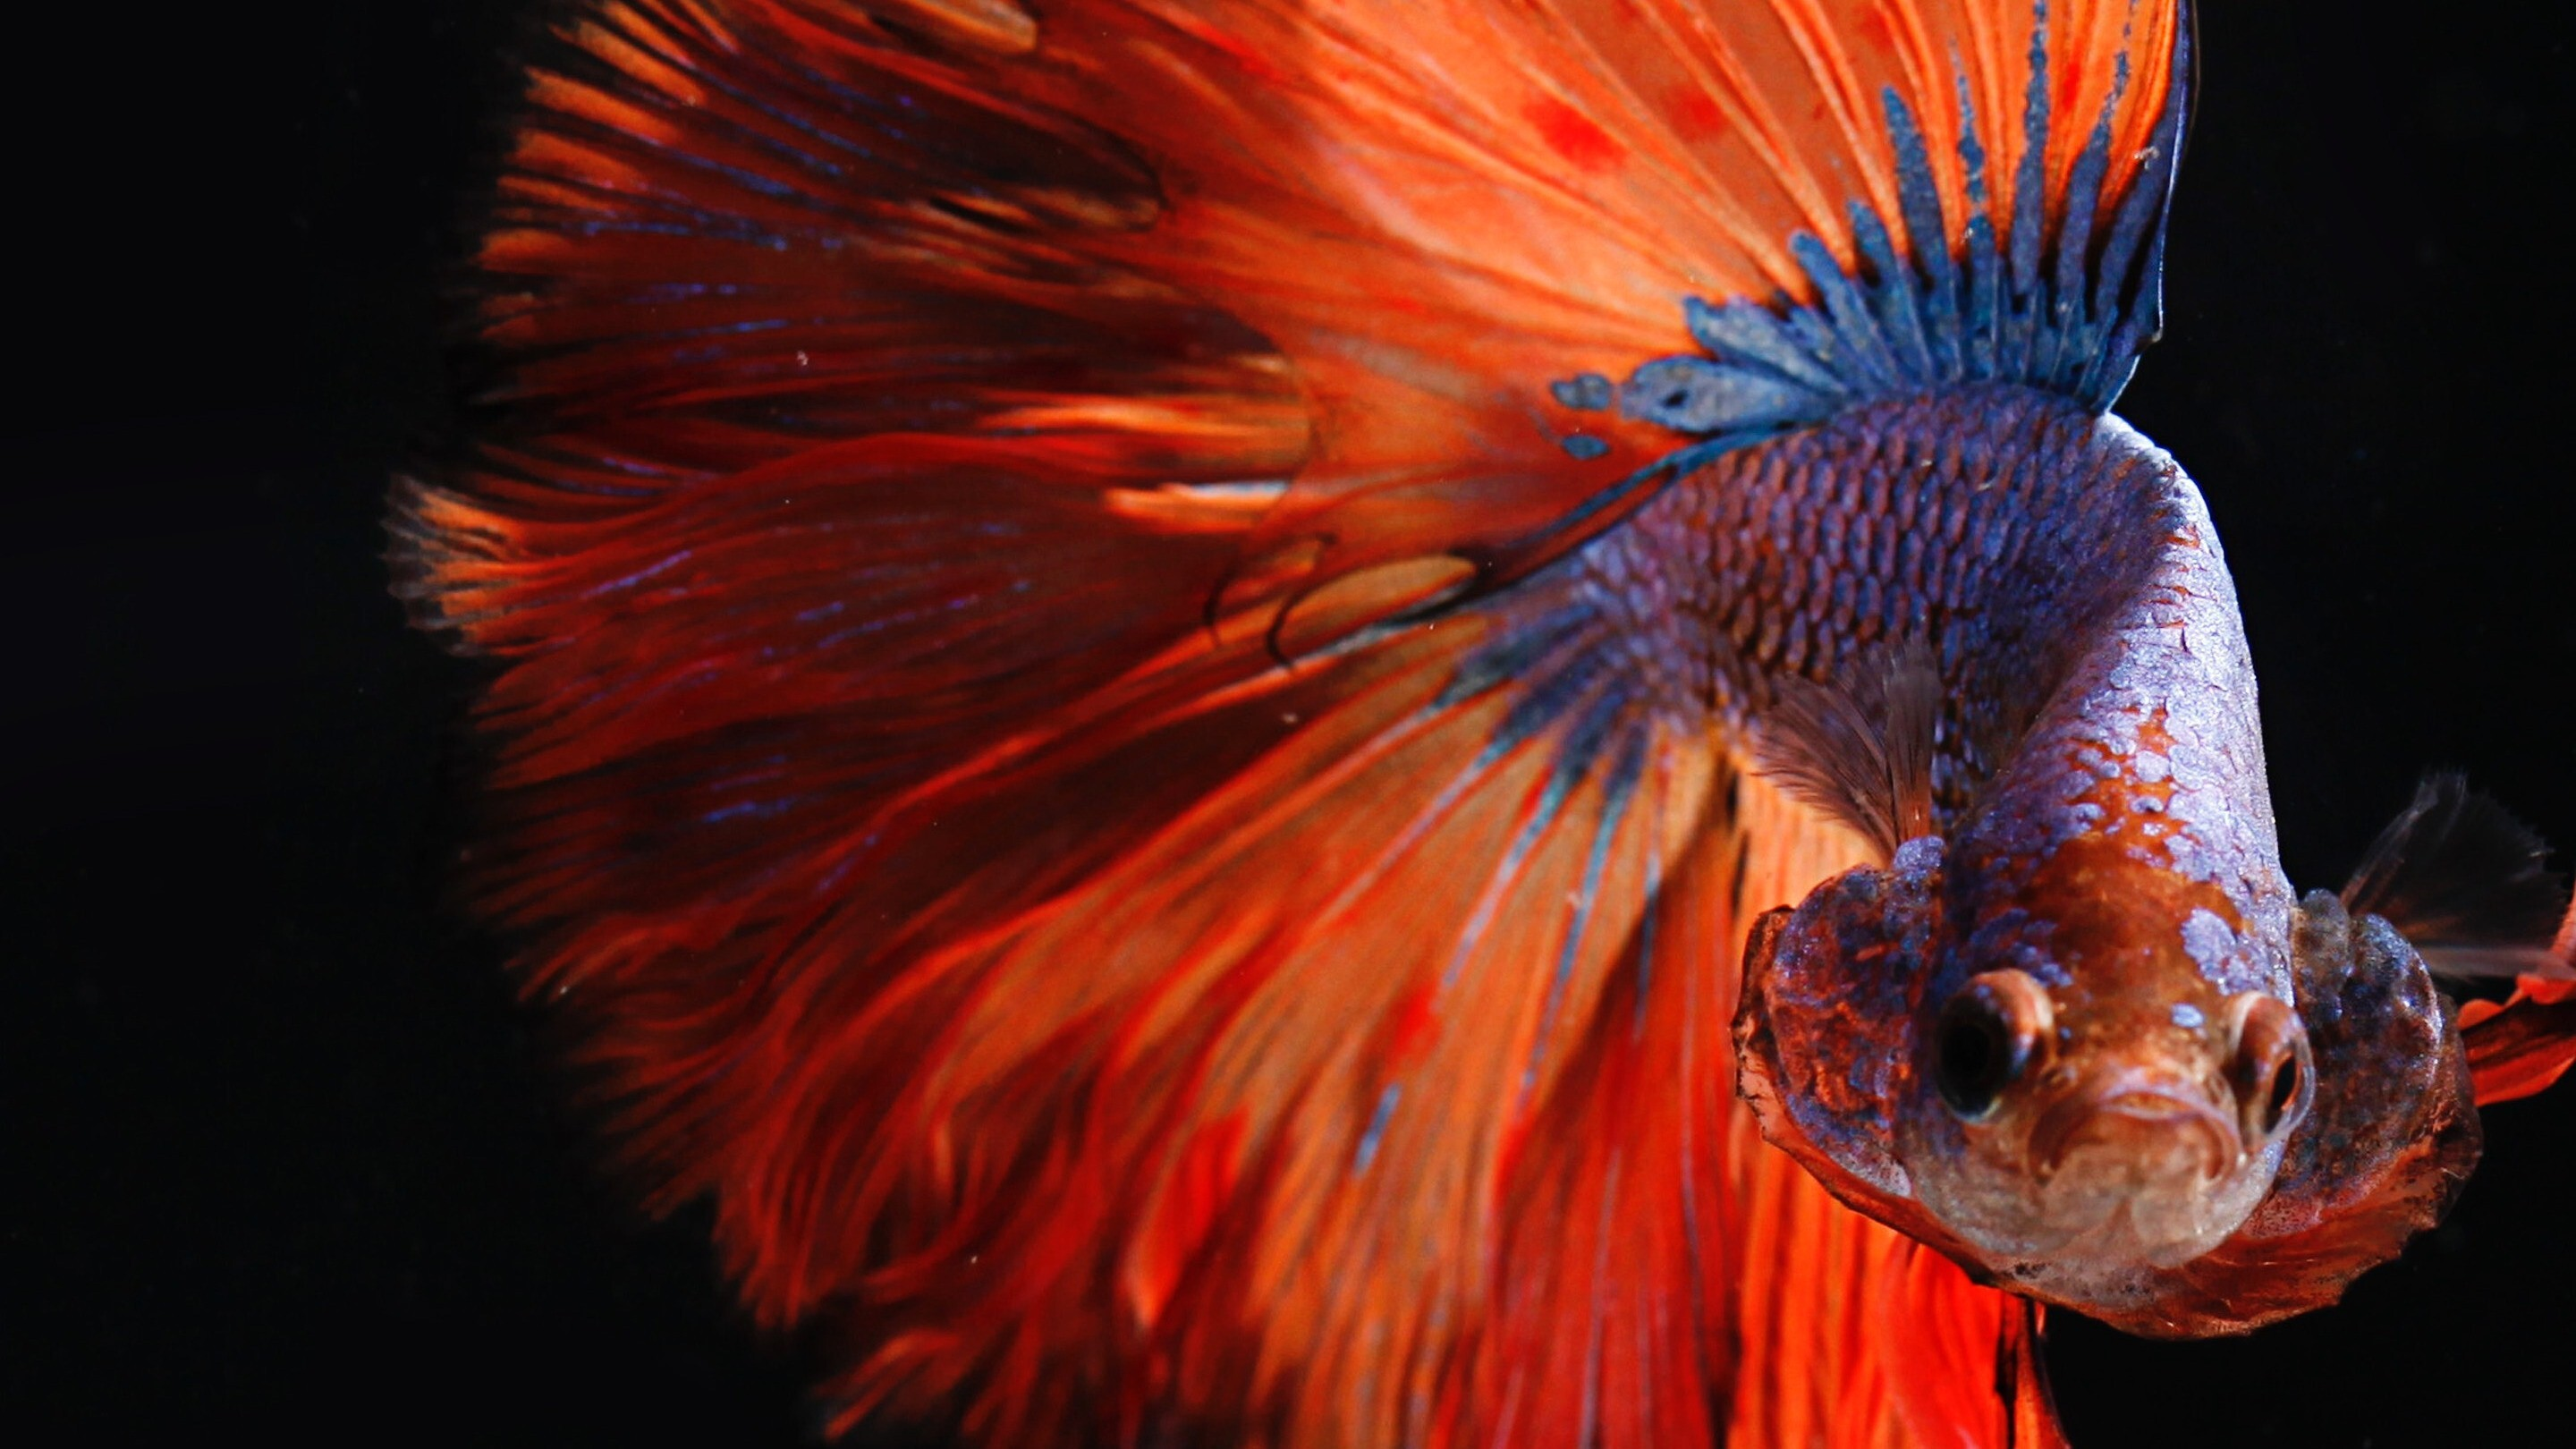 Charming Colorful Fish | HD Wallpapers